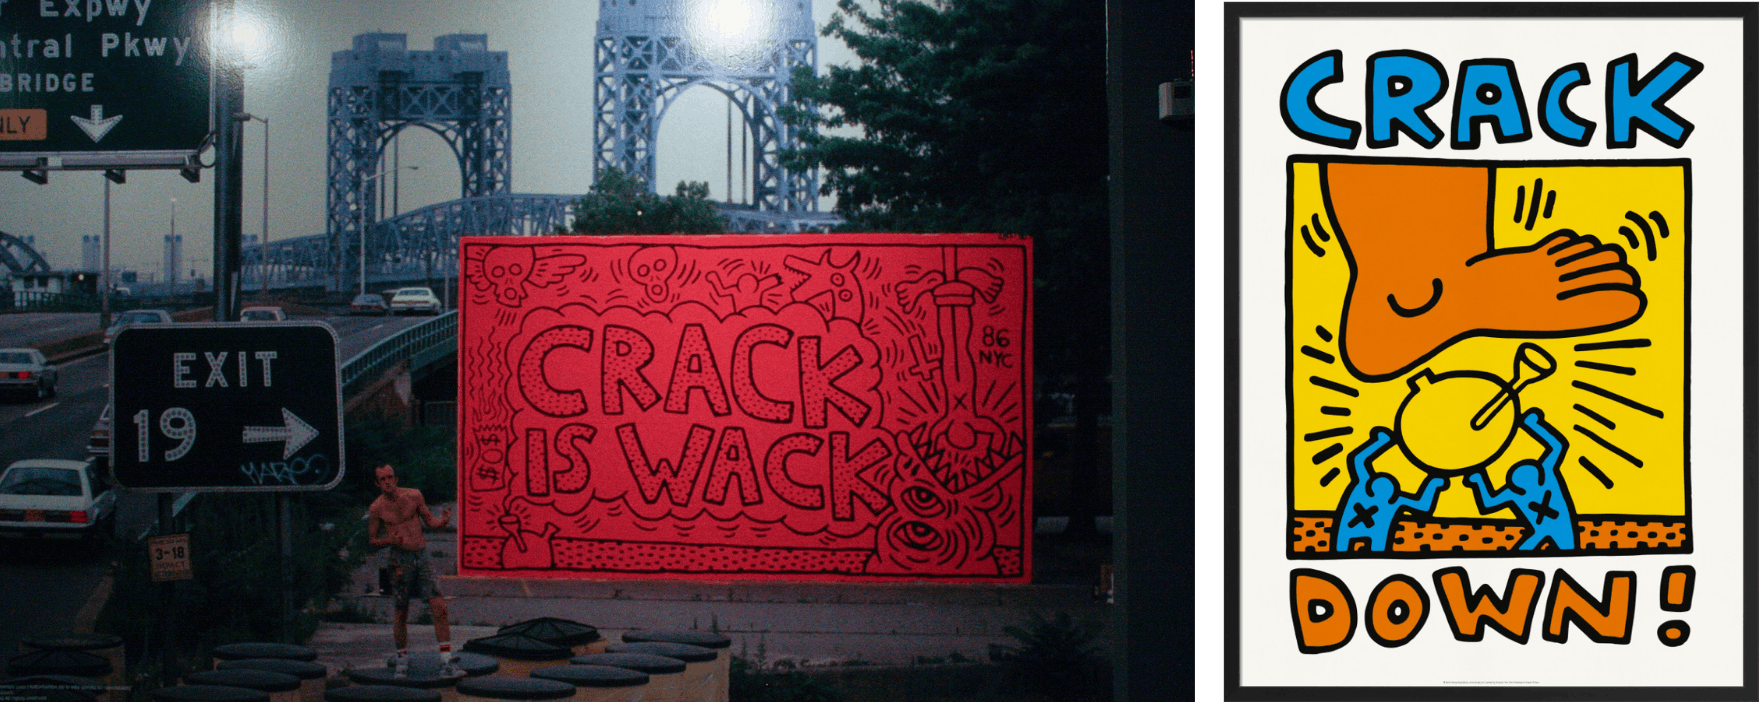 Keith Haring presenting his 'Crack is Wack' mural on Harlem River Drive, East Harlem 1986, Creative Commons, and 'Crack Down! 1986' poster designed by Keith Haring